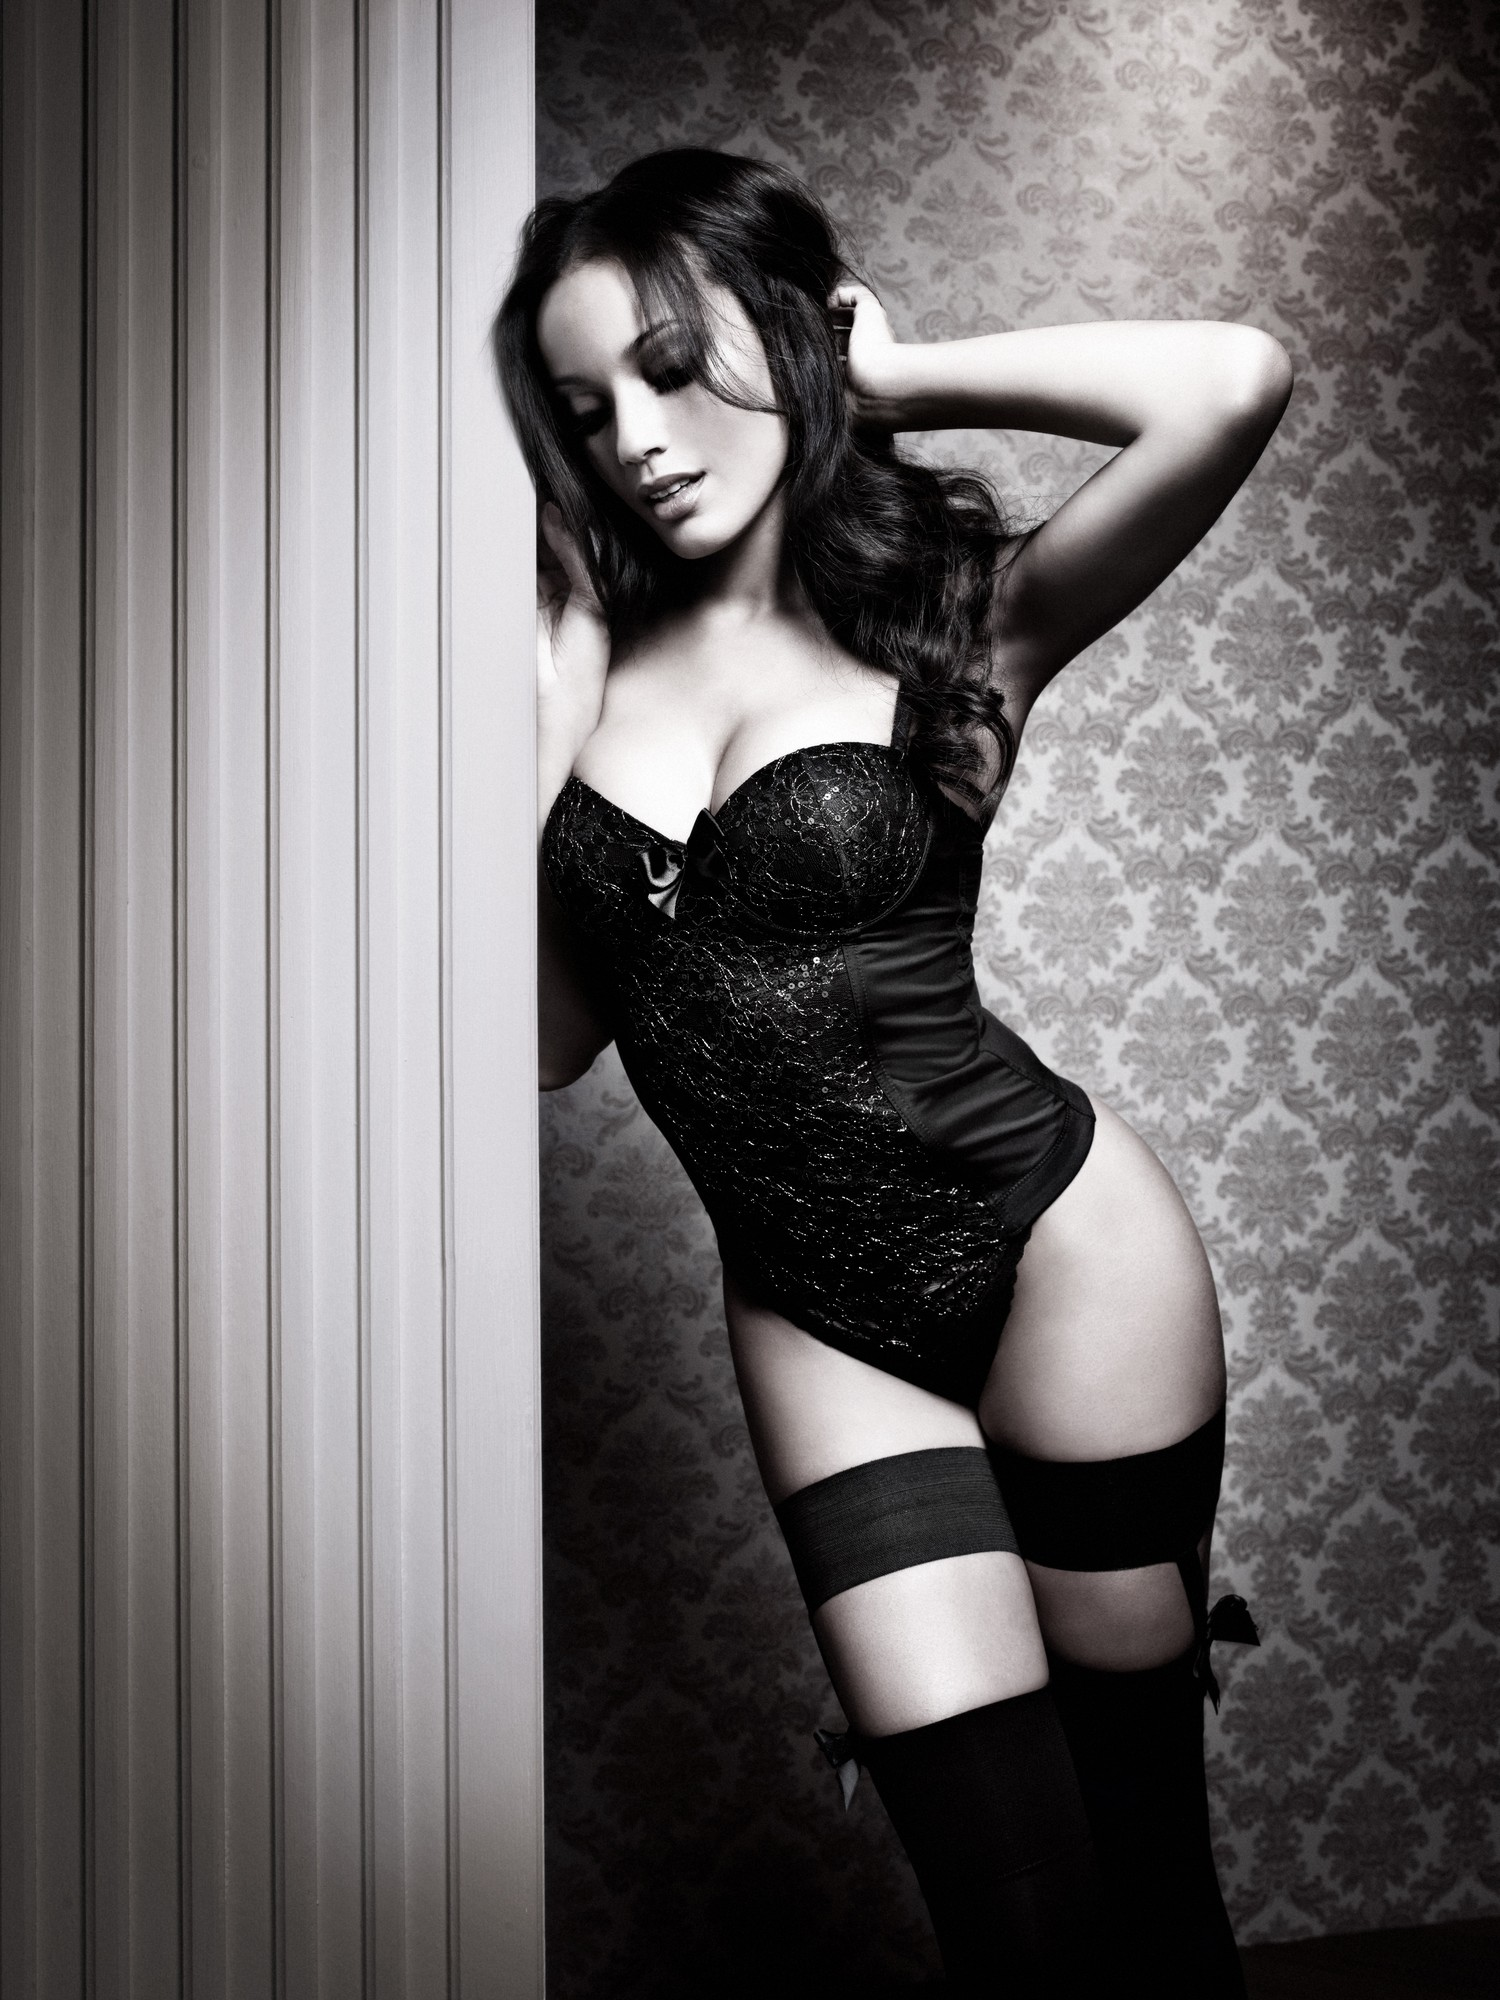 Selita-Ebanks-manor-lingerie-3